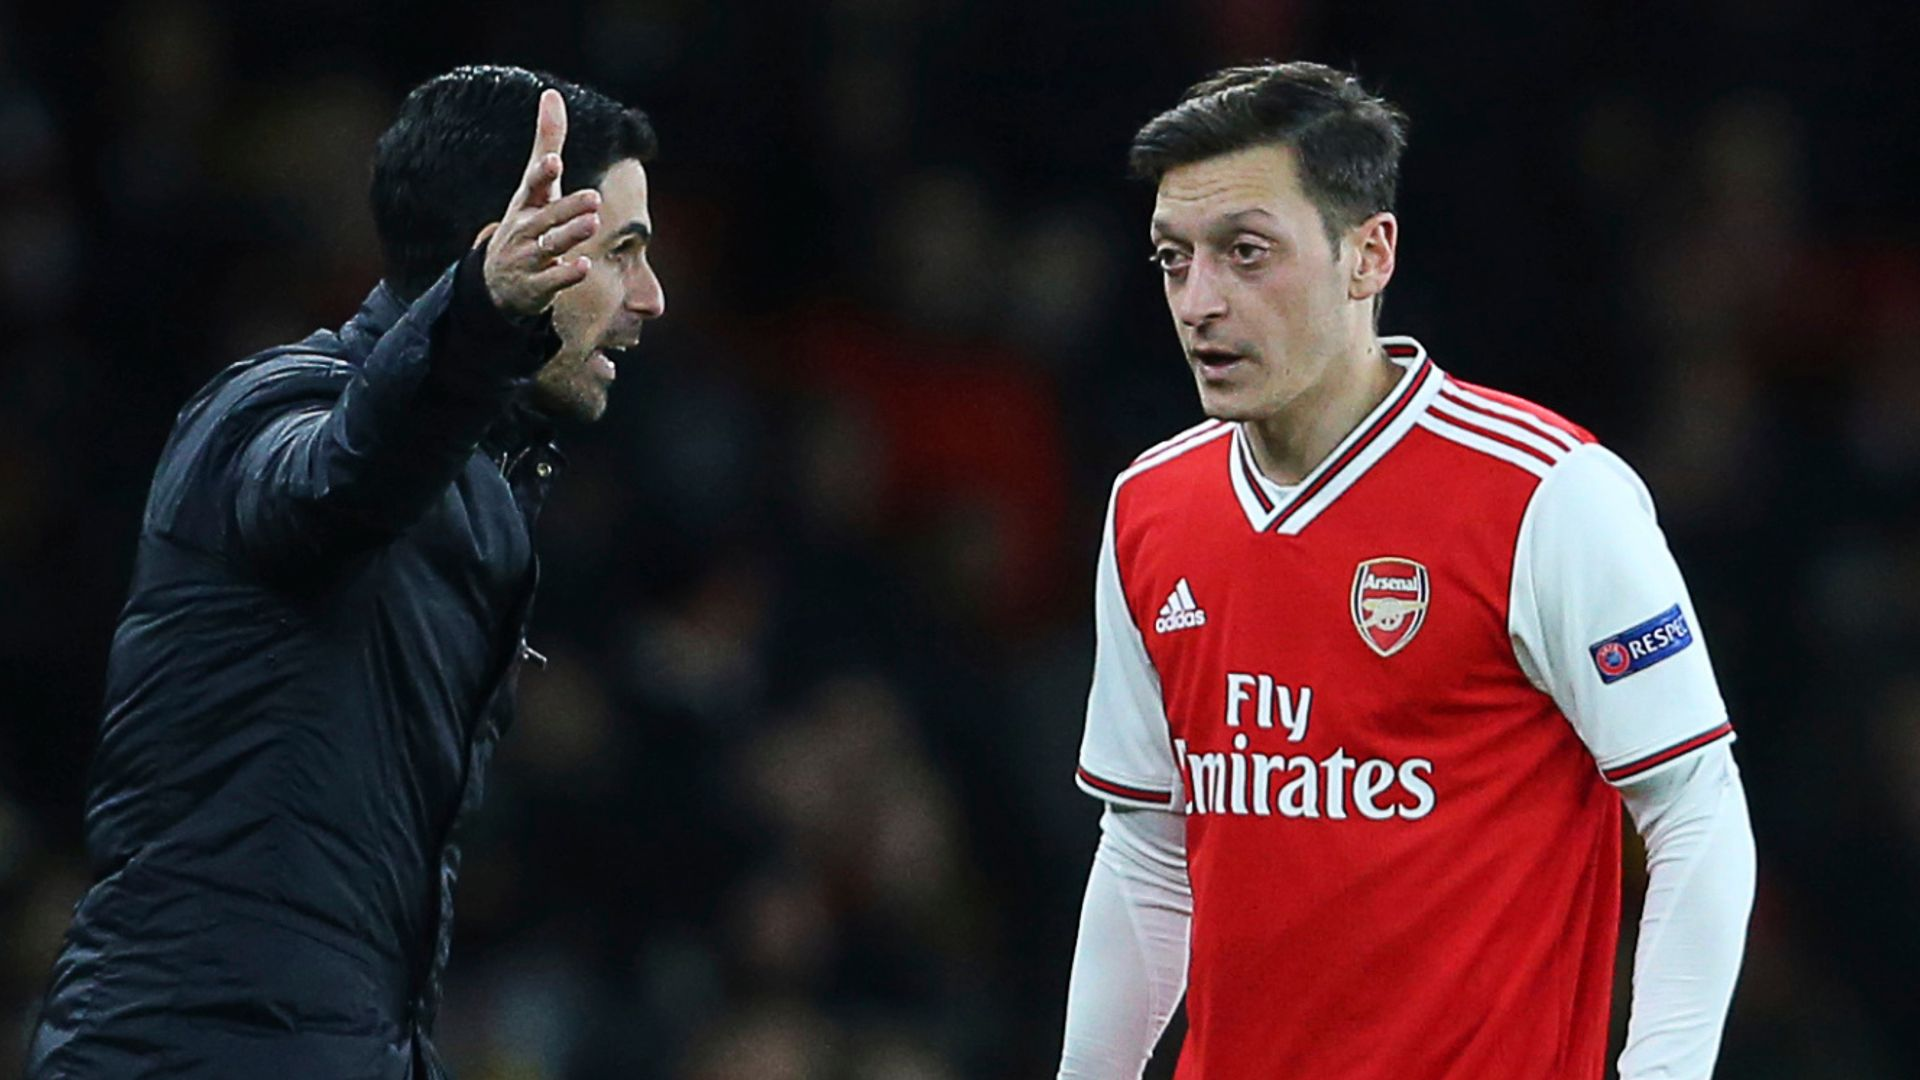 Arteta: Ozil's quality will be missed at Arsenal